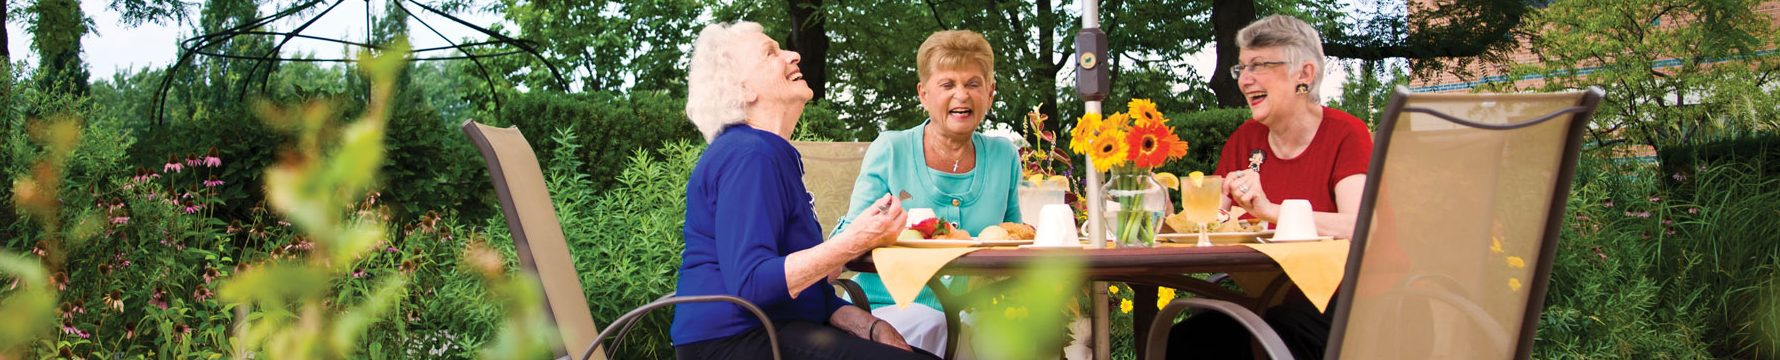 A group of senior women sitting at table outdoors enjoying a meal